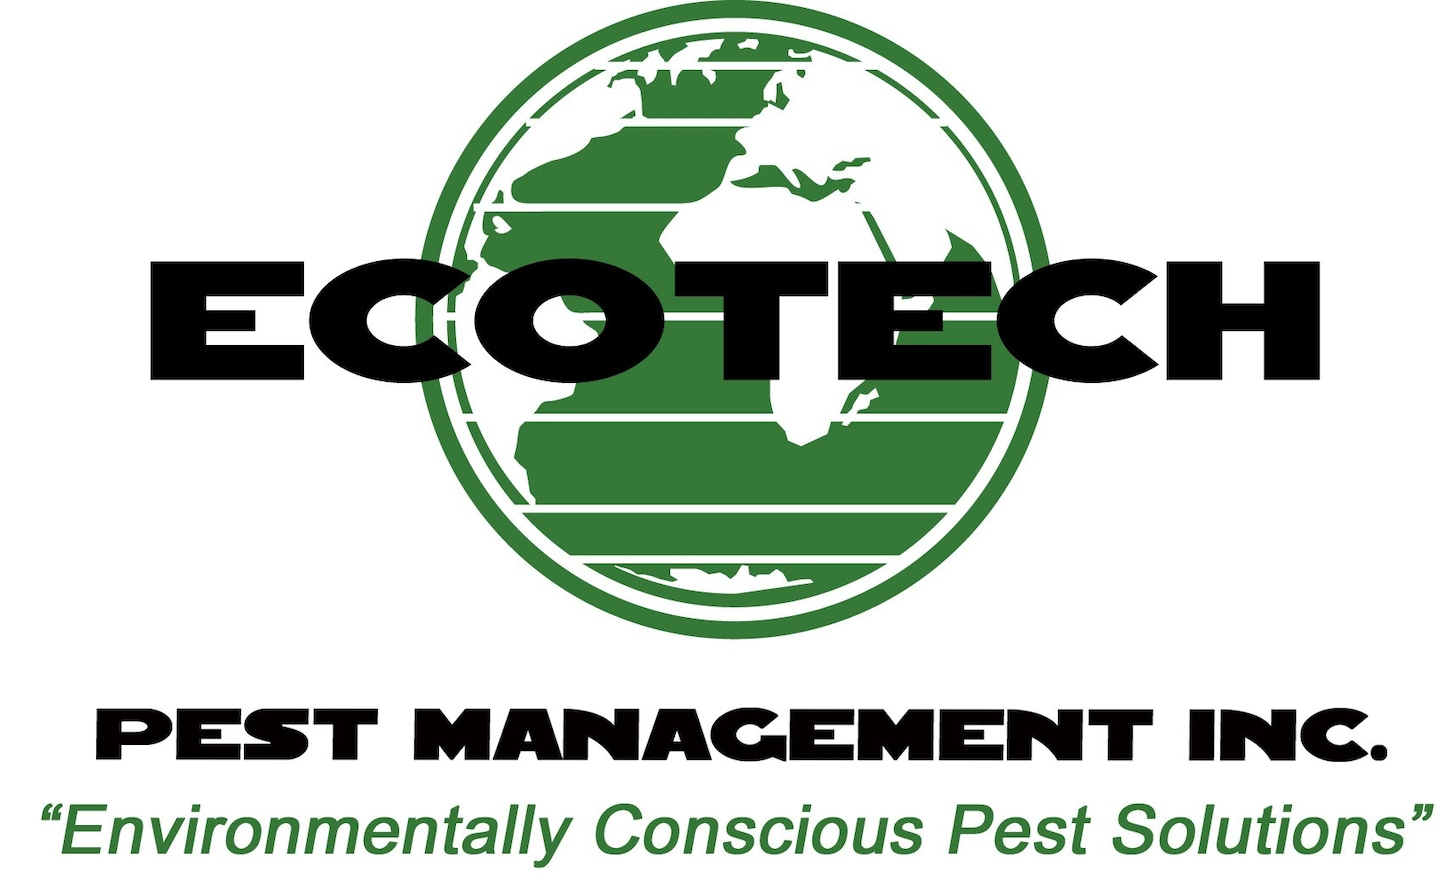 EcoTech Pest Management Inc